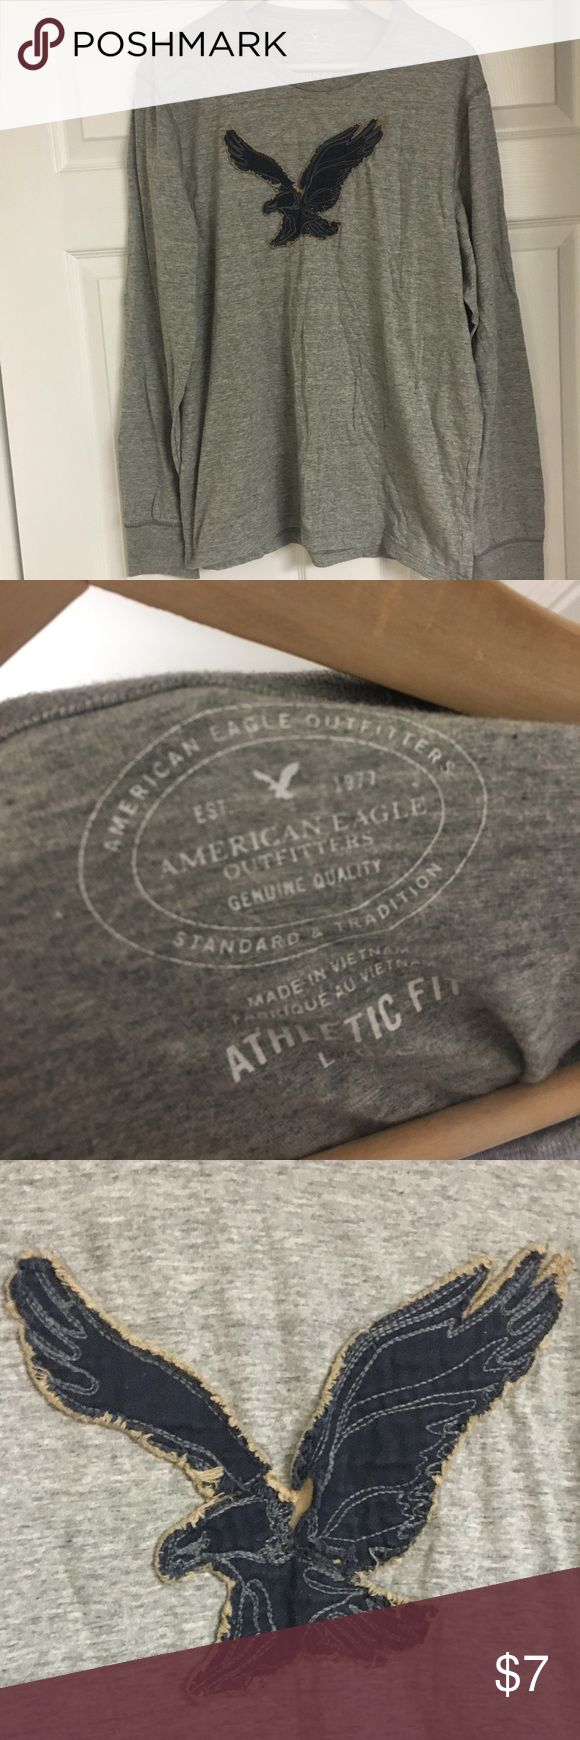 ‼️American Eagle Mens Long Sleeve Graphic Tshirt - American Eagle Brand - Gray color - Long sleeve t-shirt - Size L - Eagle decal on shirt - Good condition American Eagle Outfitters Shirts Tees - Long Sleeve